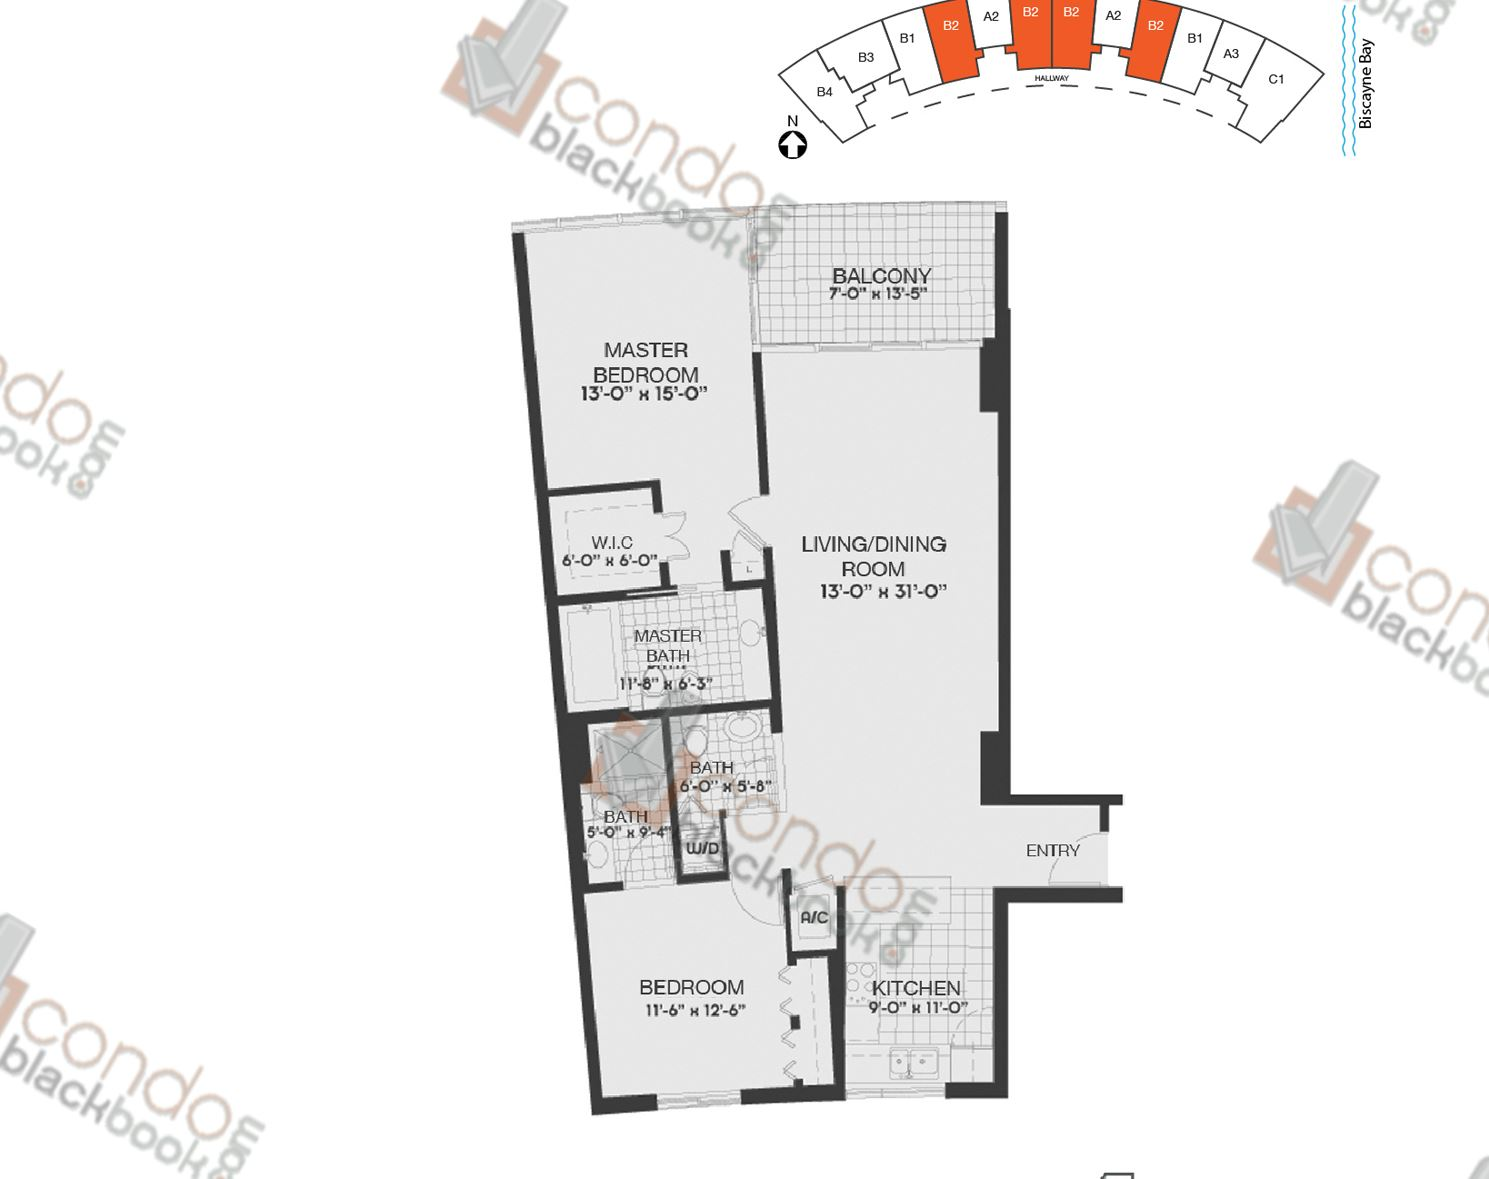 Floor plan for Blue Edgewater Miami, model B2, line 04,06,07,09, 2/2.5 bedrooms, 1319 sq ft